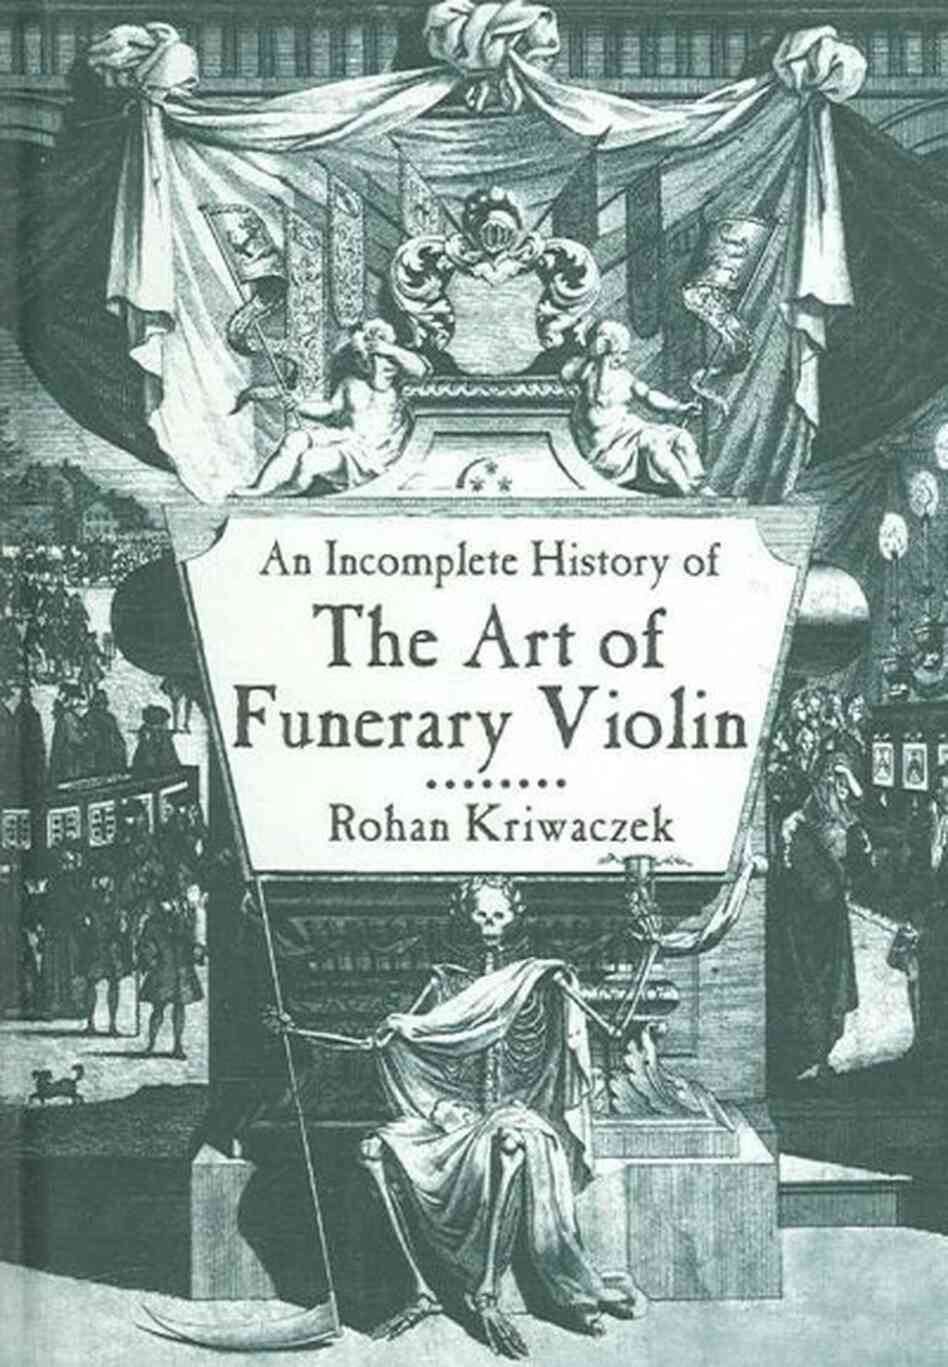 An Incomplete History of the Funerary Violin